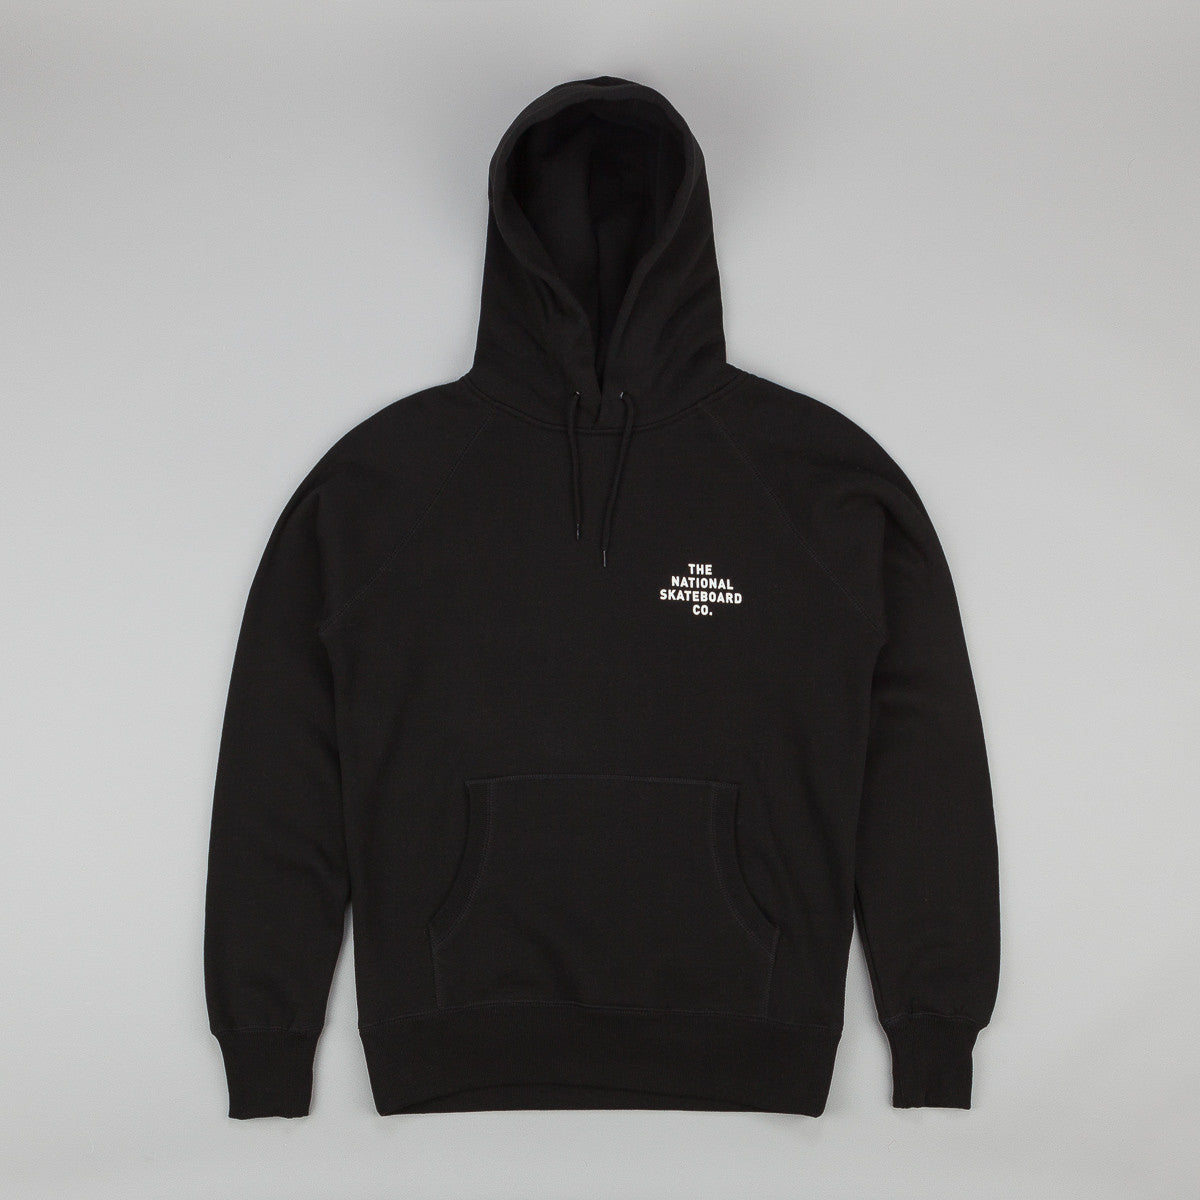 The National Skateboard Co Division Hooded Sweatshirt